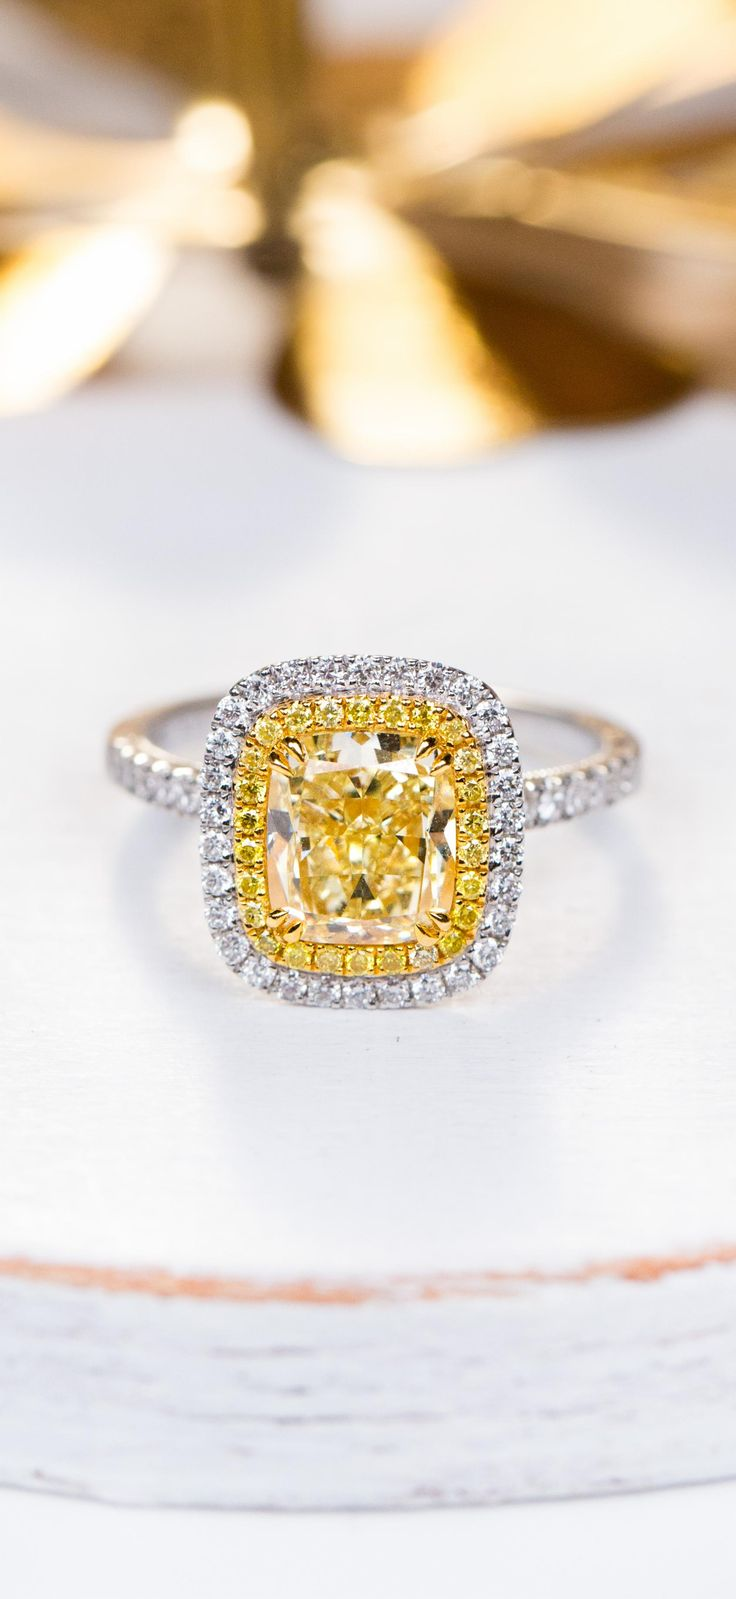 Forevermark Golden Diamonds Halo Engagement Ring Is A Shining Symbol Of  Your Love Find Your